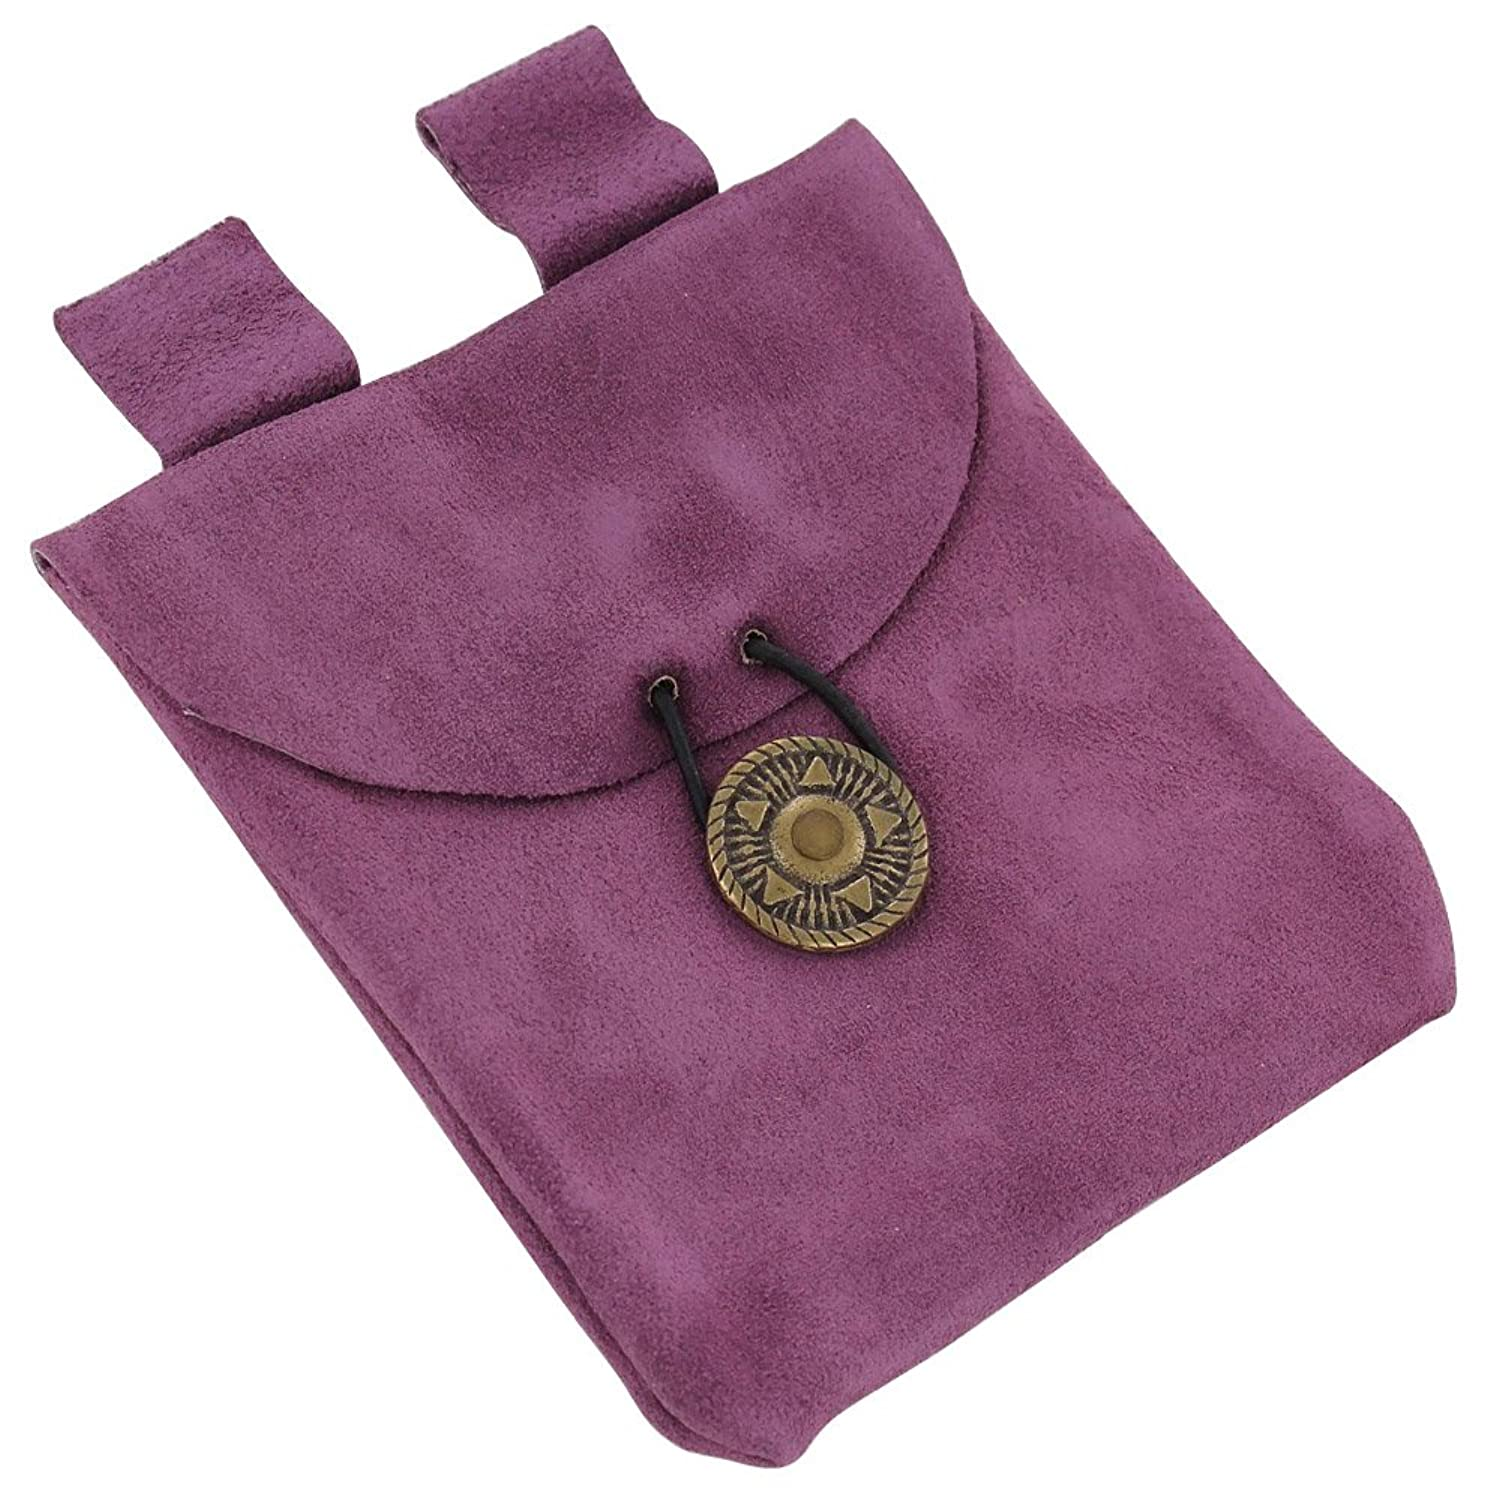 Deluxe Adult Costumes - Subconsciously conscious violet small suede leather pouch